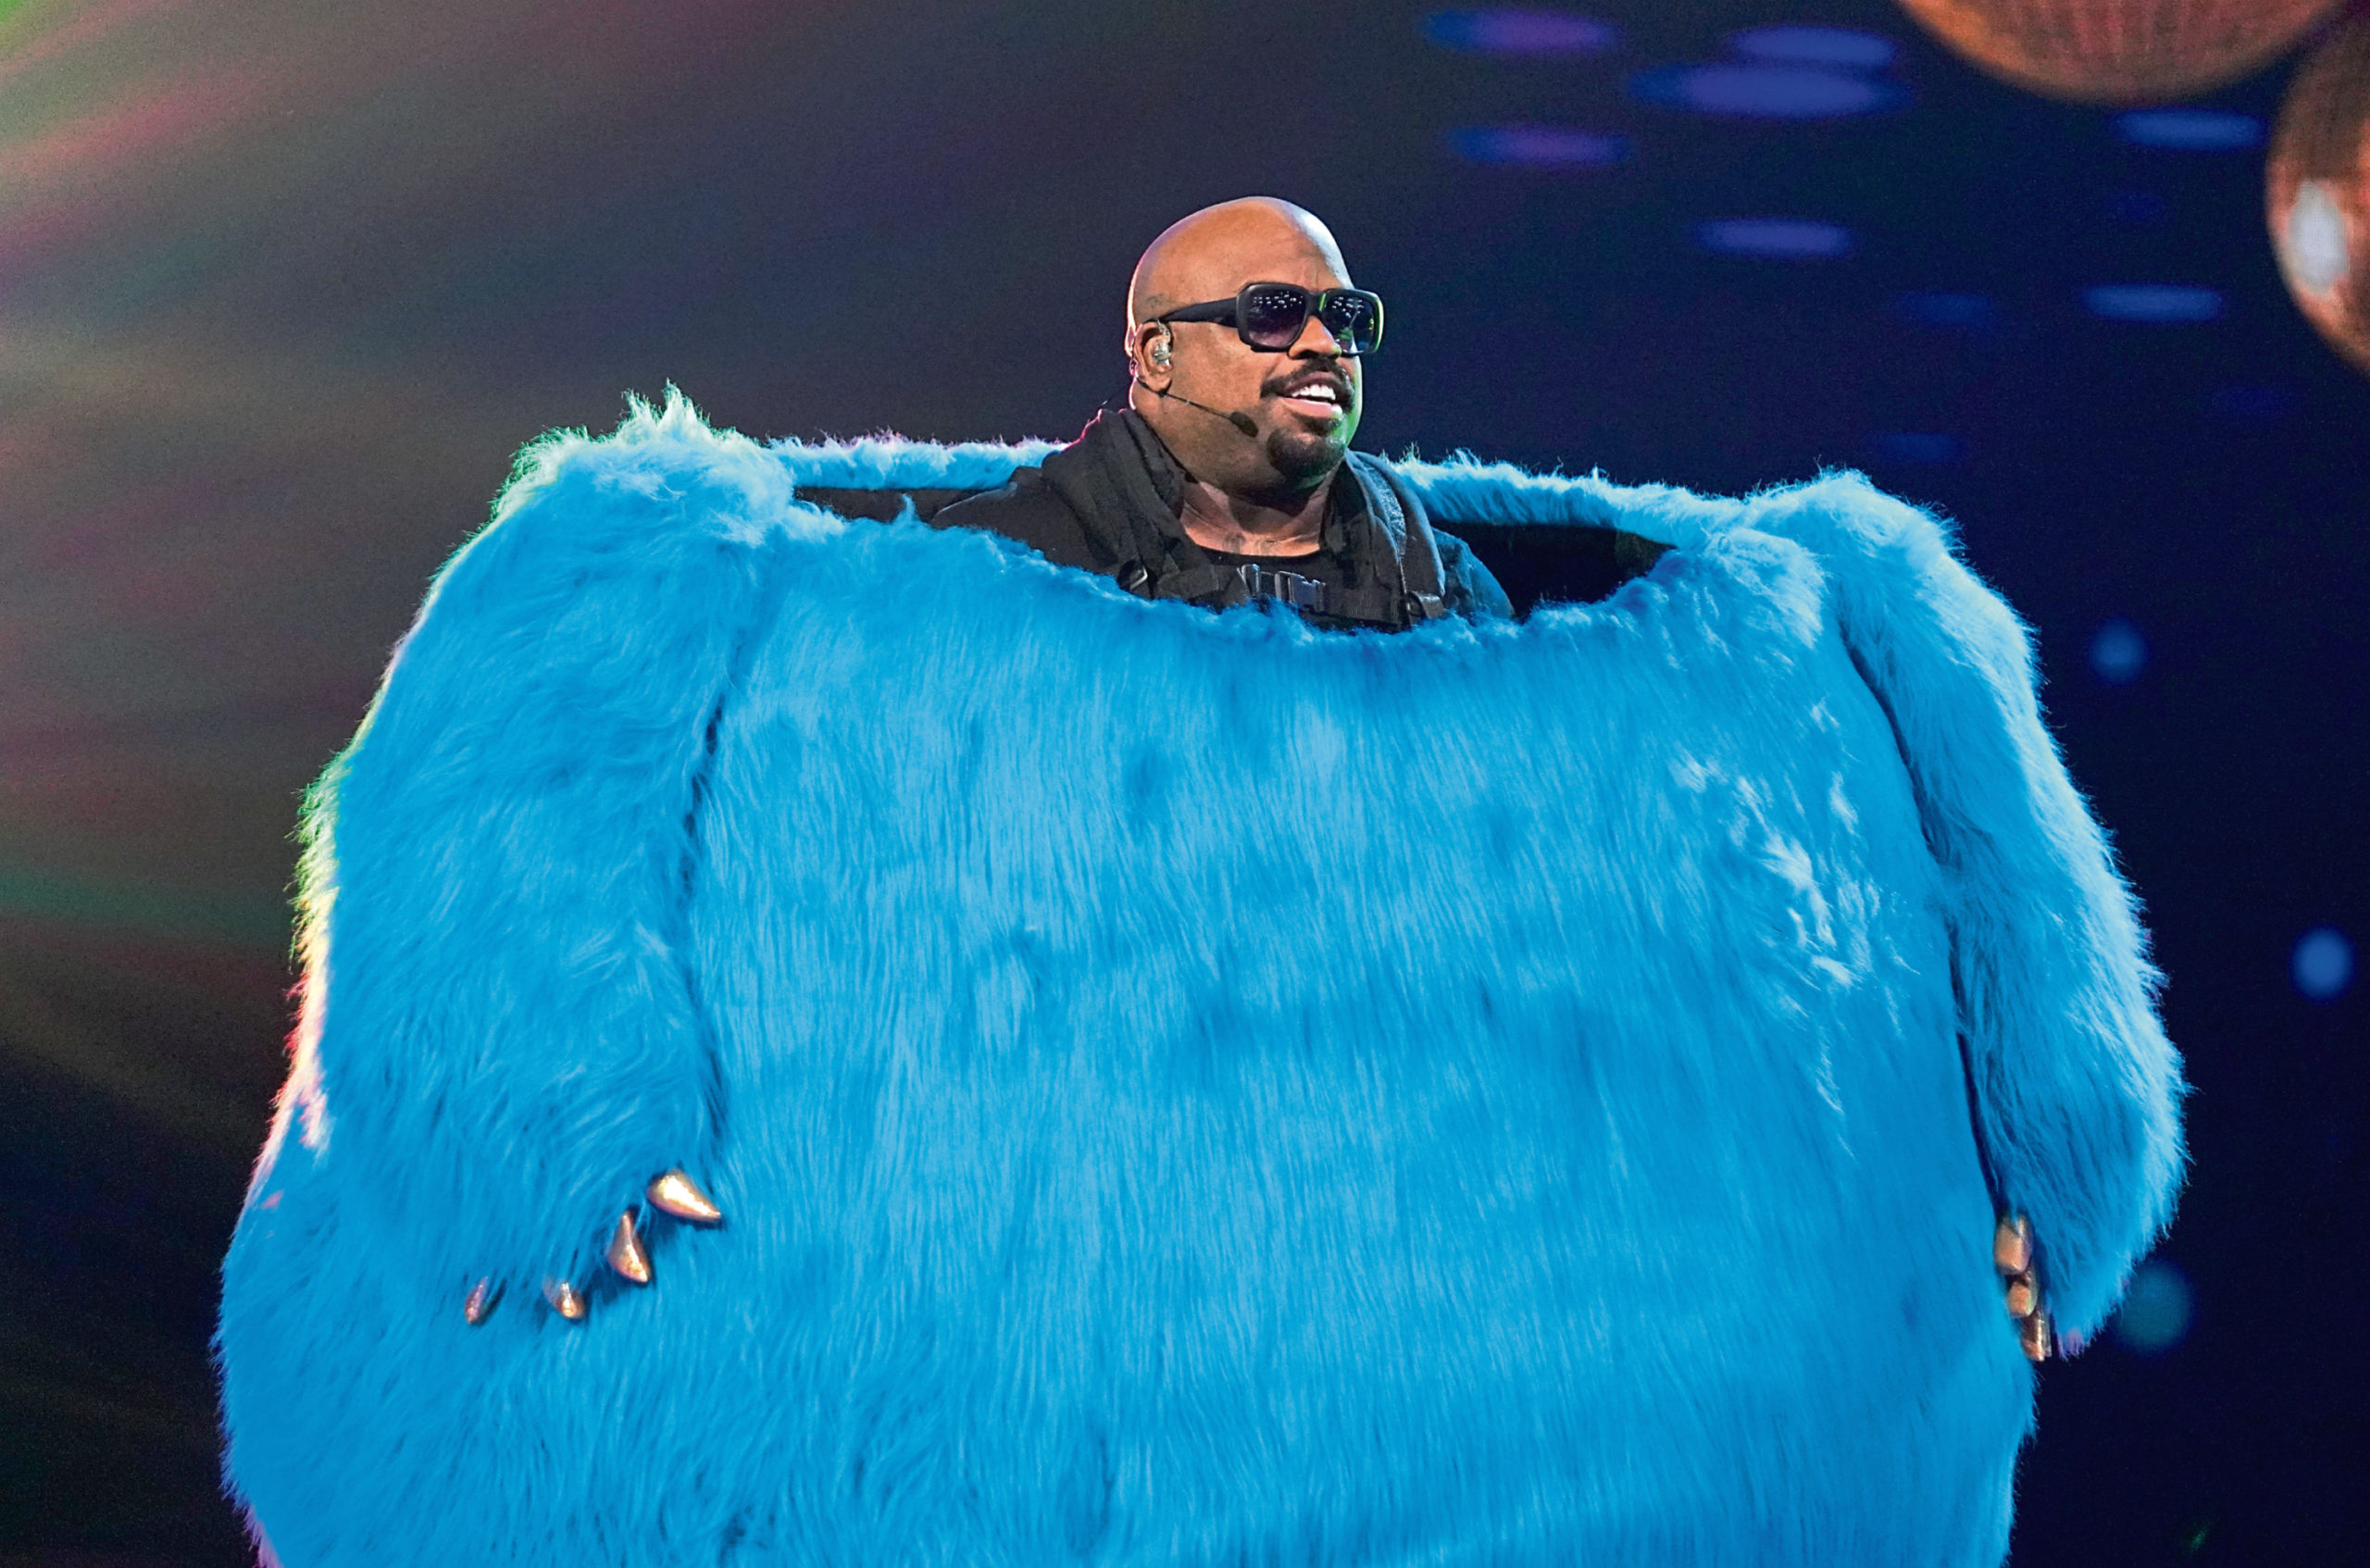 Monster in exposed as CeeLo Green in The Masked Singer.